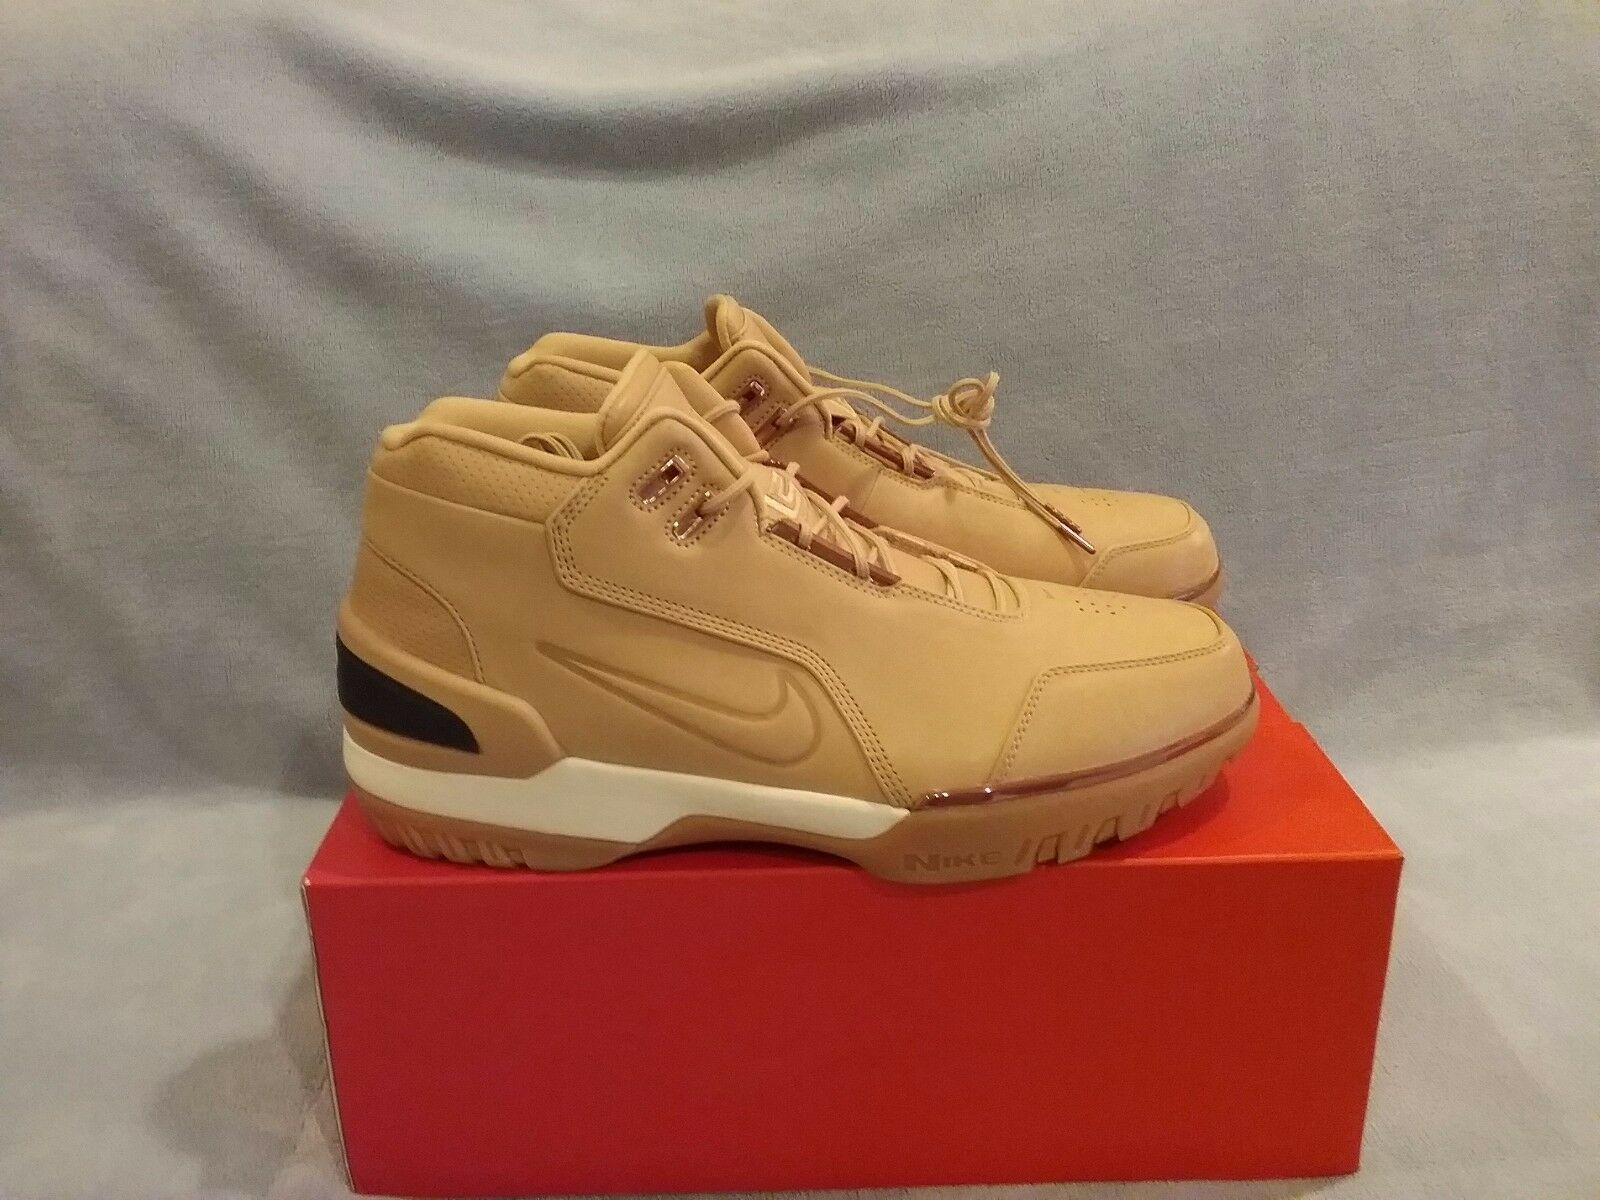 Nike Air Zoom Generation AS QS Lebron Vachetta Limited 308214-200 Size 10.5